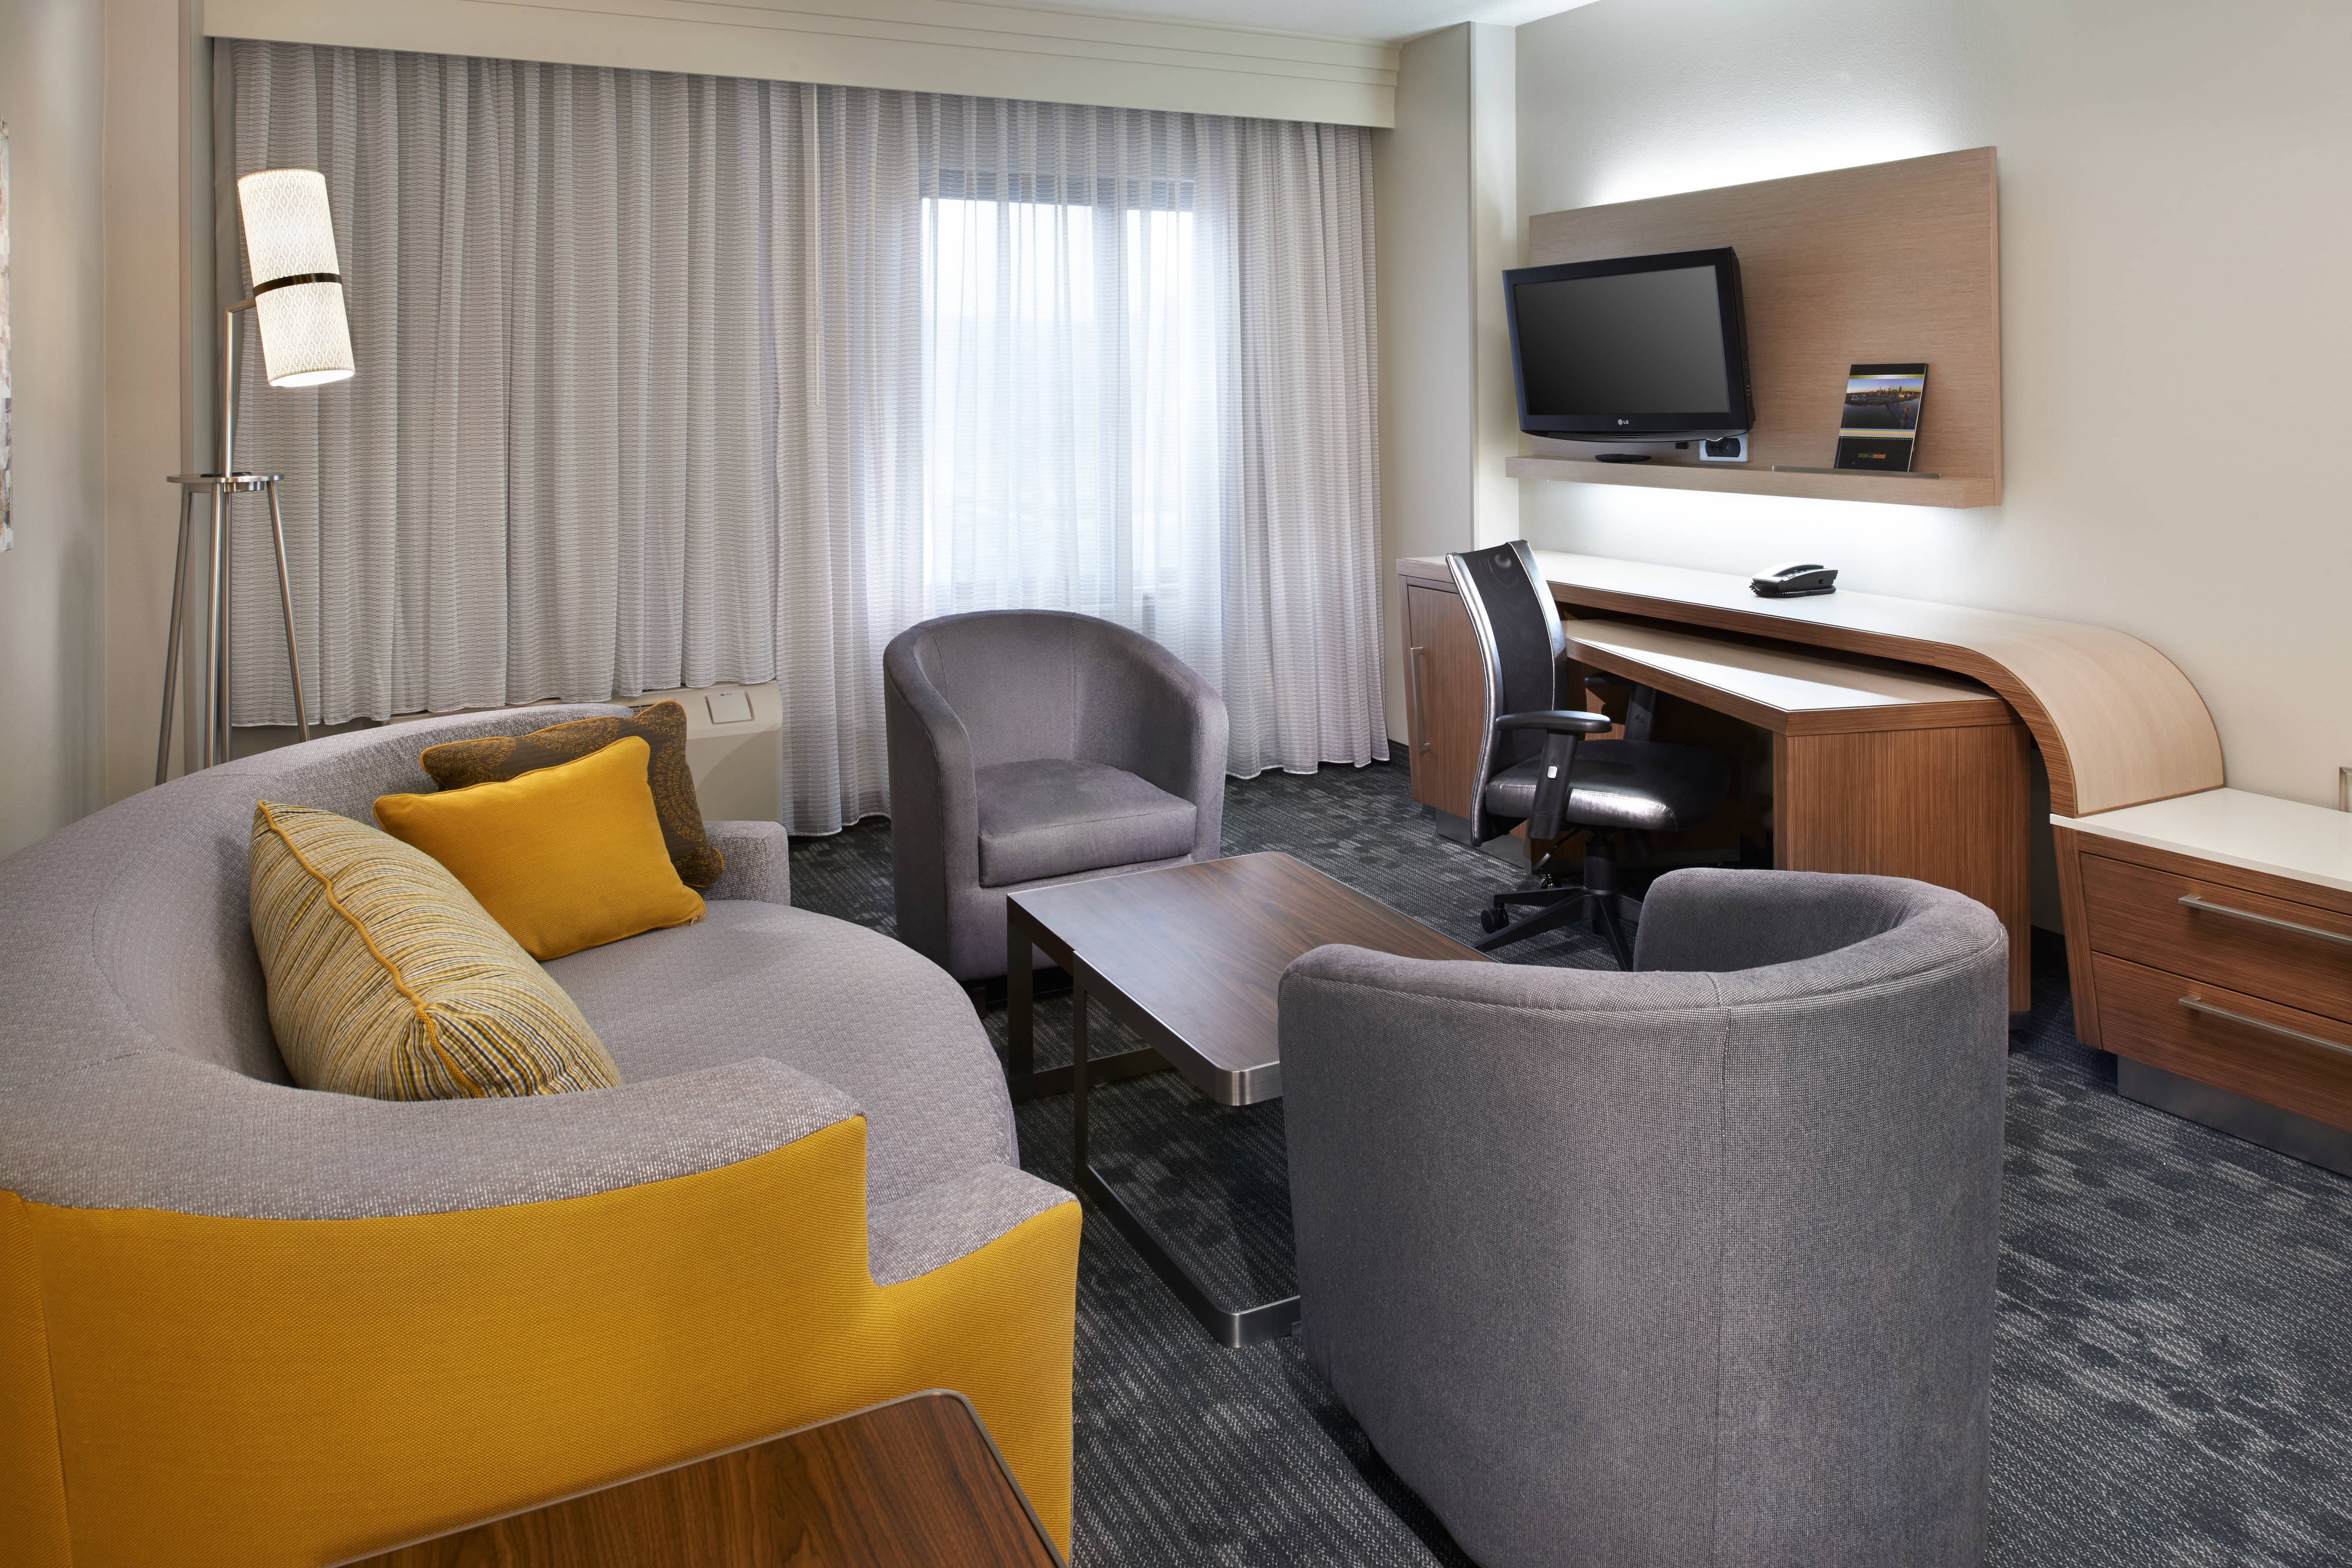 What Beds Do Marriott Hotels Use